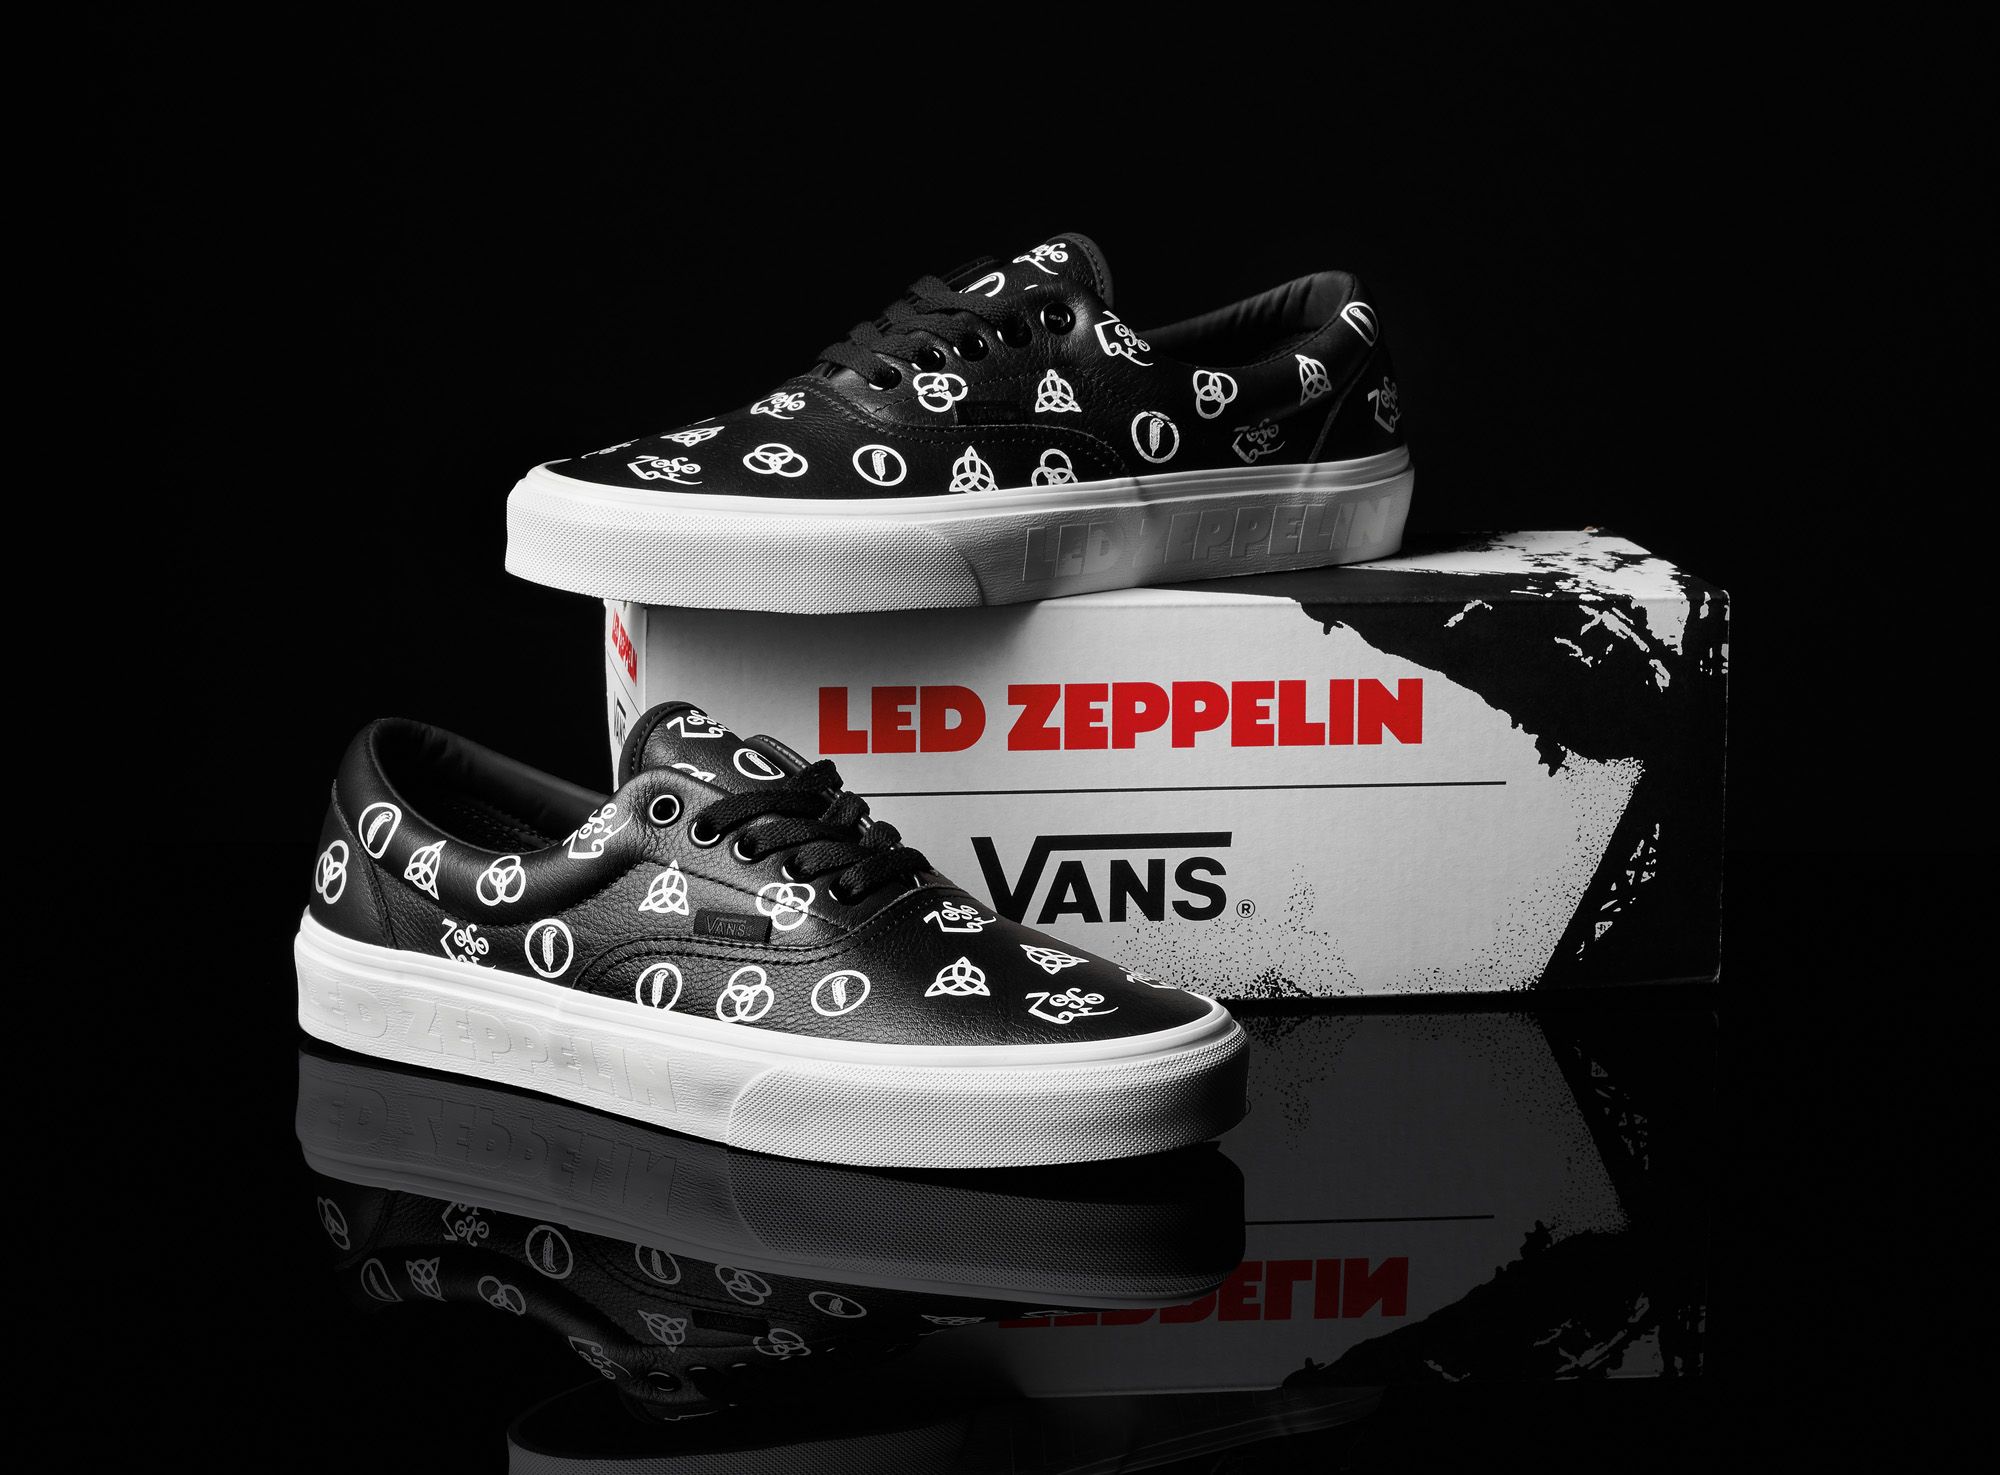 bcdd6027dea446 Vans Partners with Led Zeppelin to Commemorate 50th Anniversary of ...